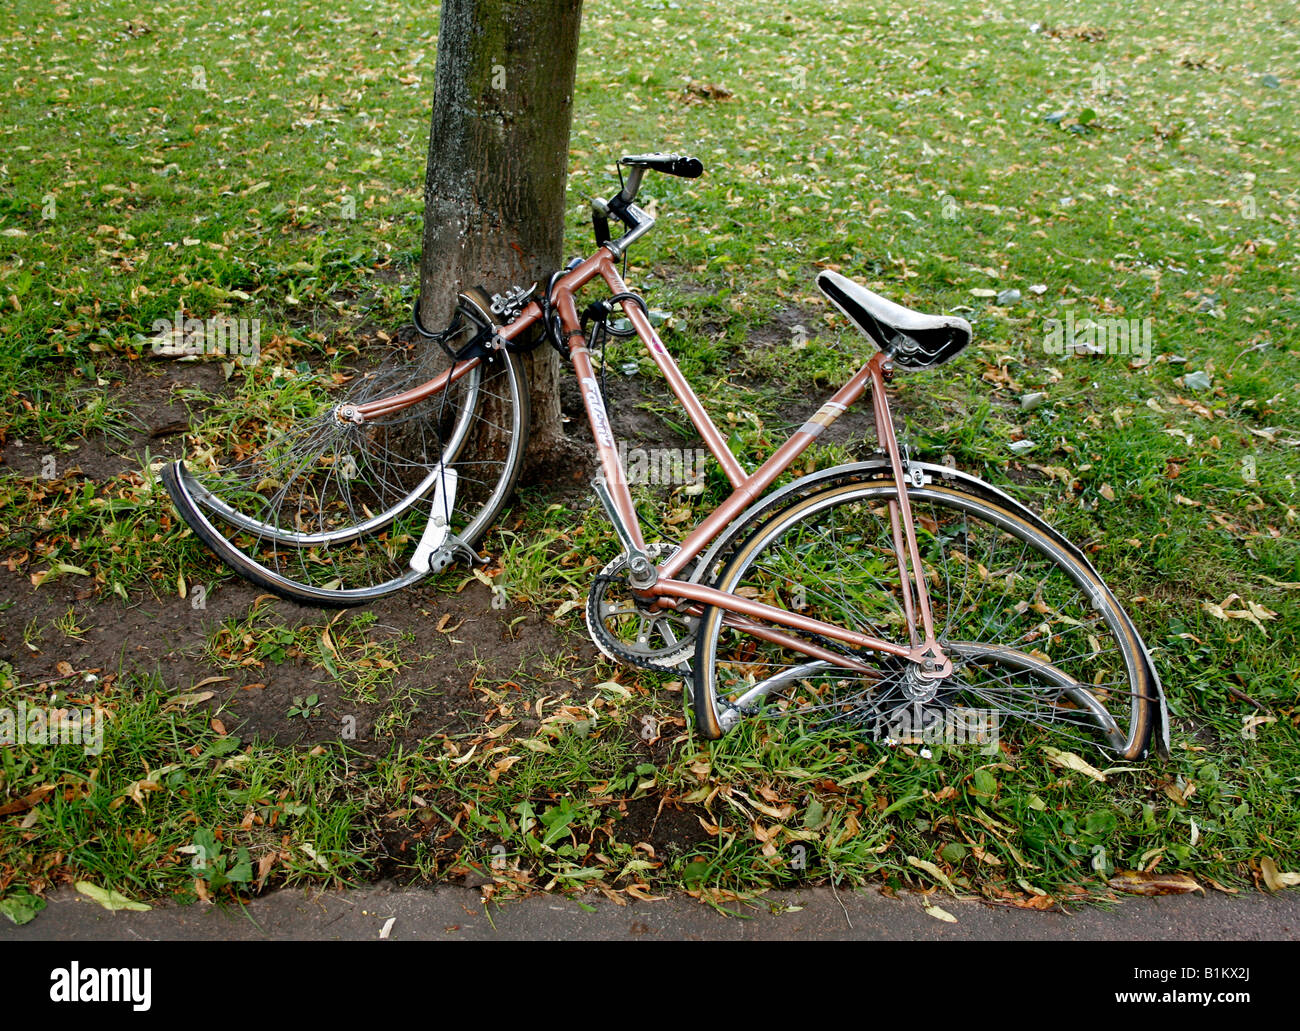 A bicycle has been abandoned, possibly due to a crash and lies broken and neglected. - Stock Image